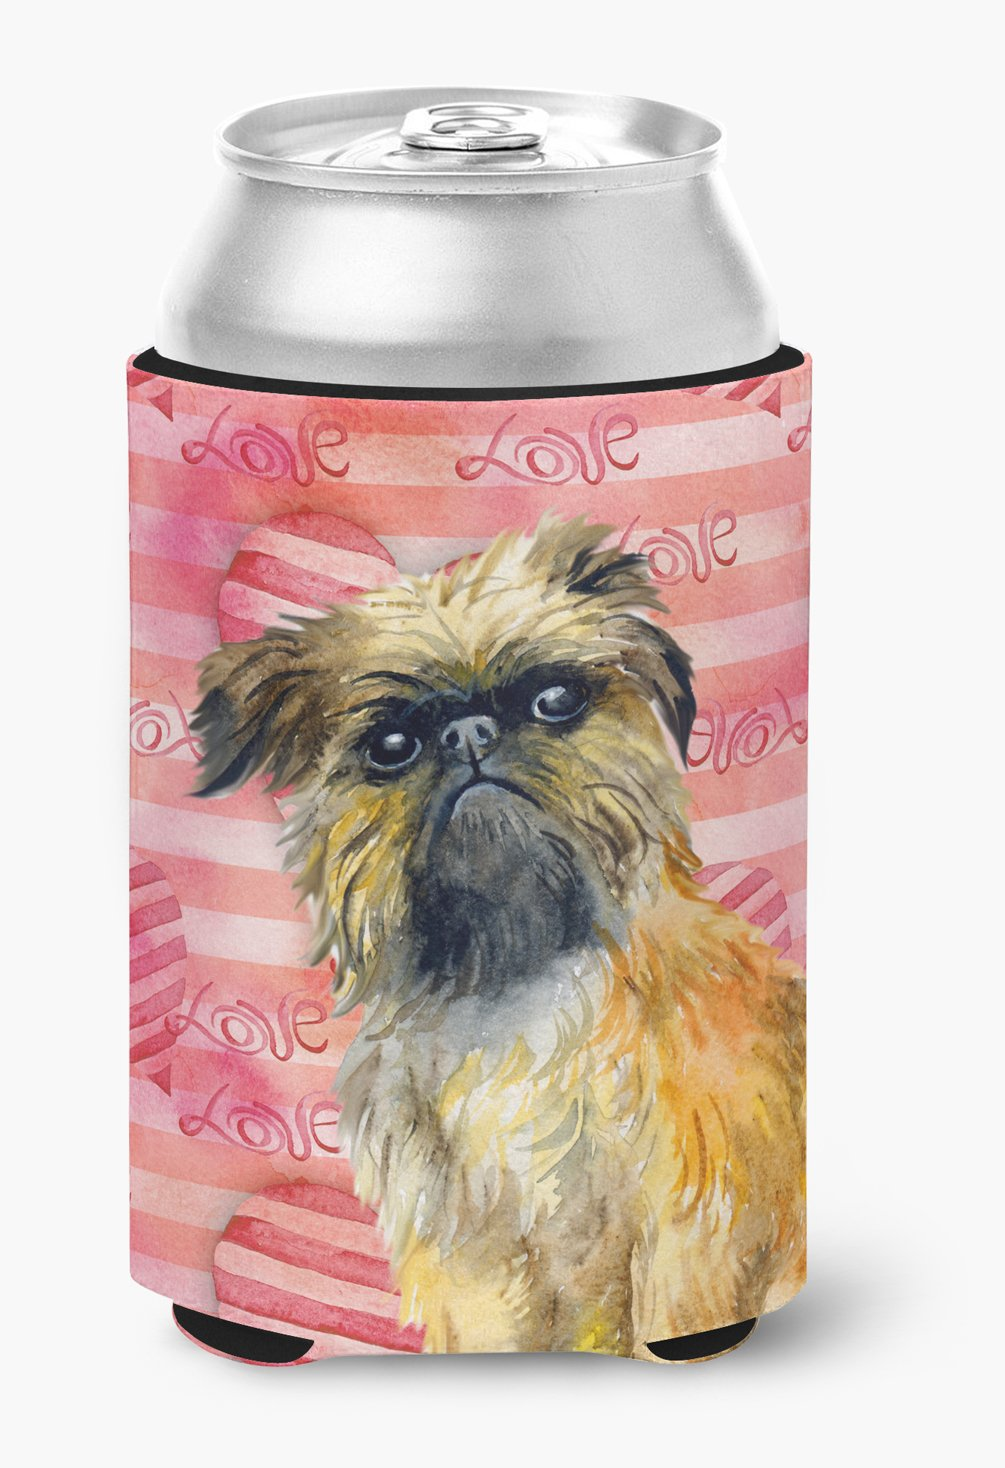 Brussels Griffon Love Can or Bottle Hugger BB9774CC by Caroline's Treasures